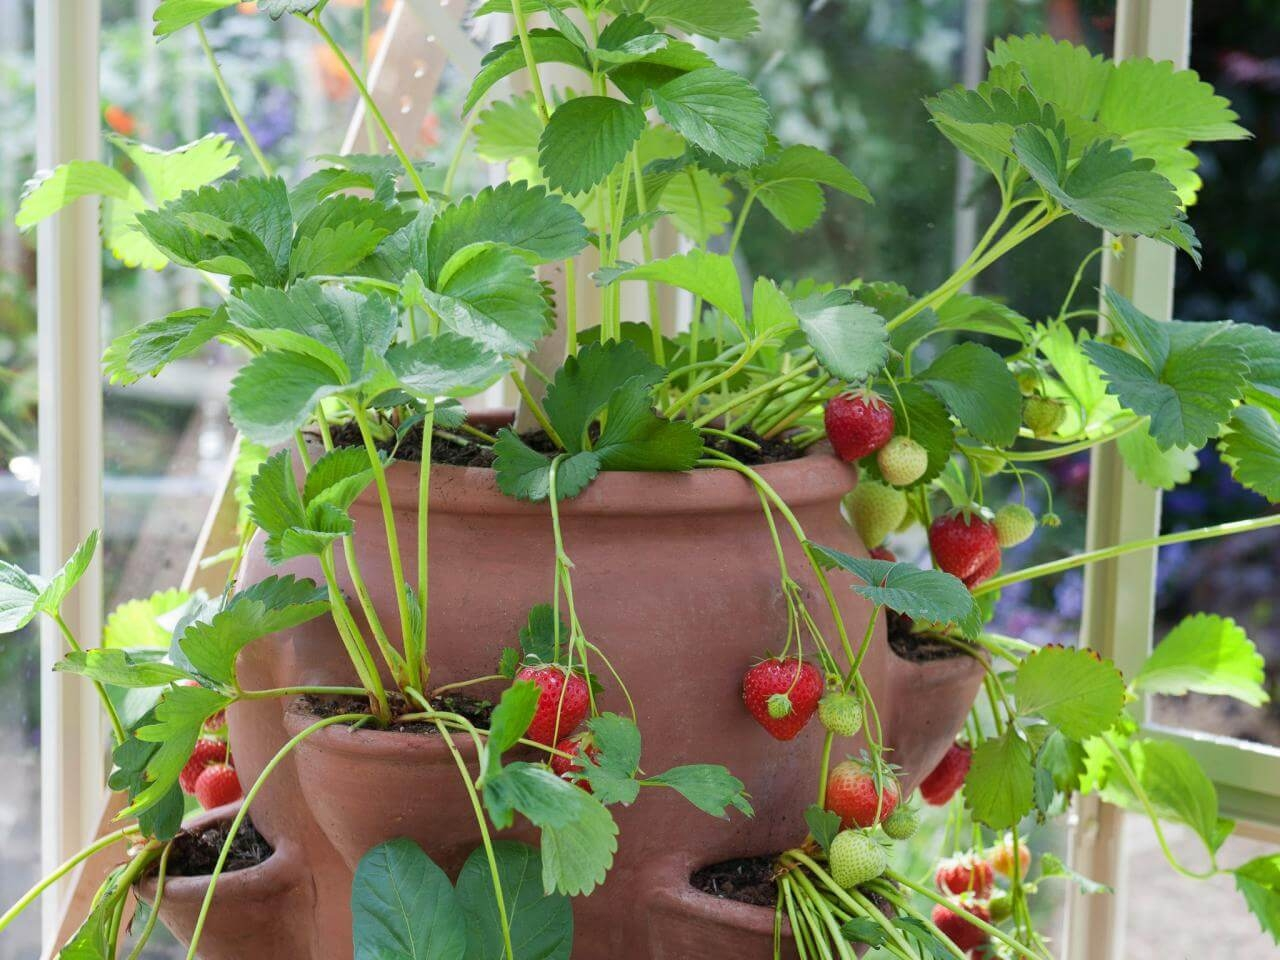 Growing strawberries featured